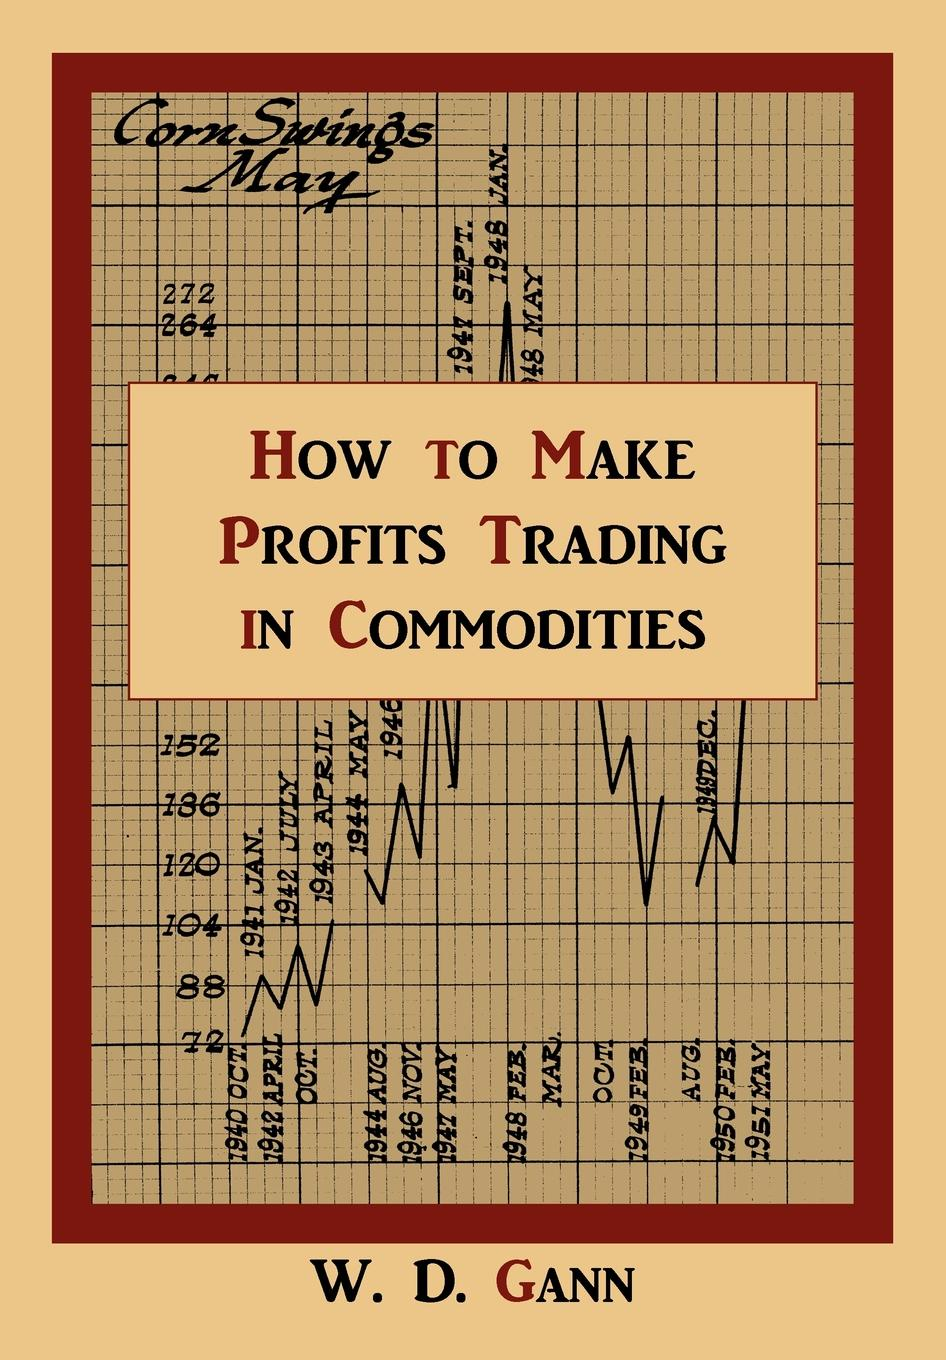 Wd gann how to make profits in commodities